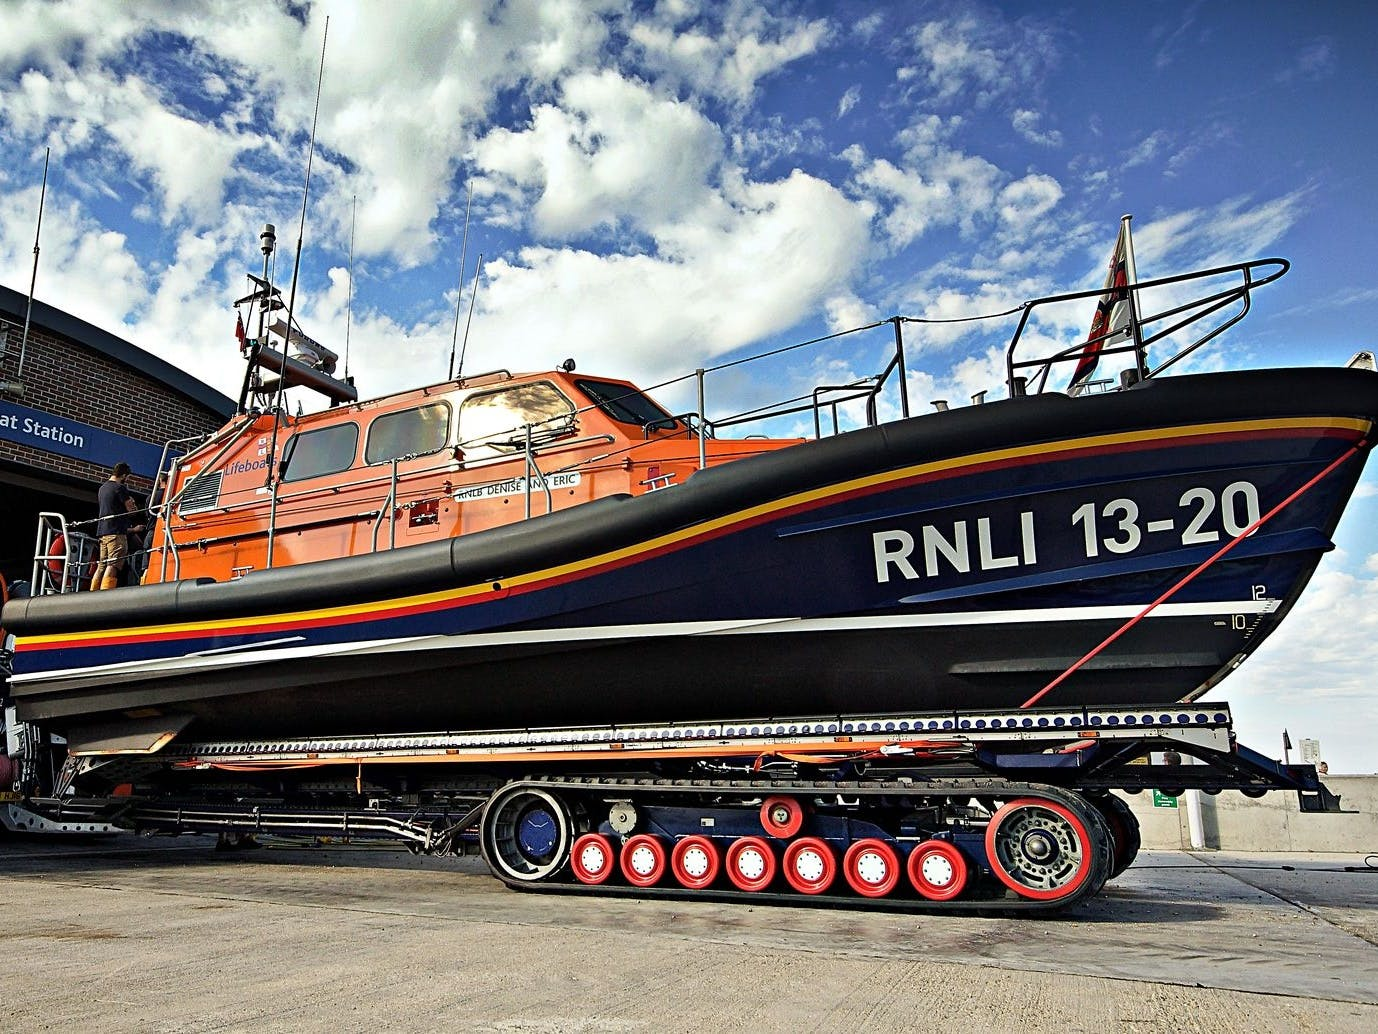 Selsey's Lifeboat outside the lifeboat station at RNLI Selsey